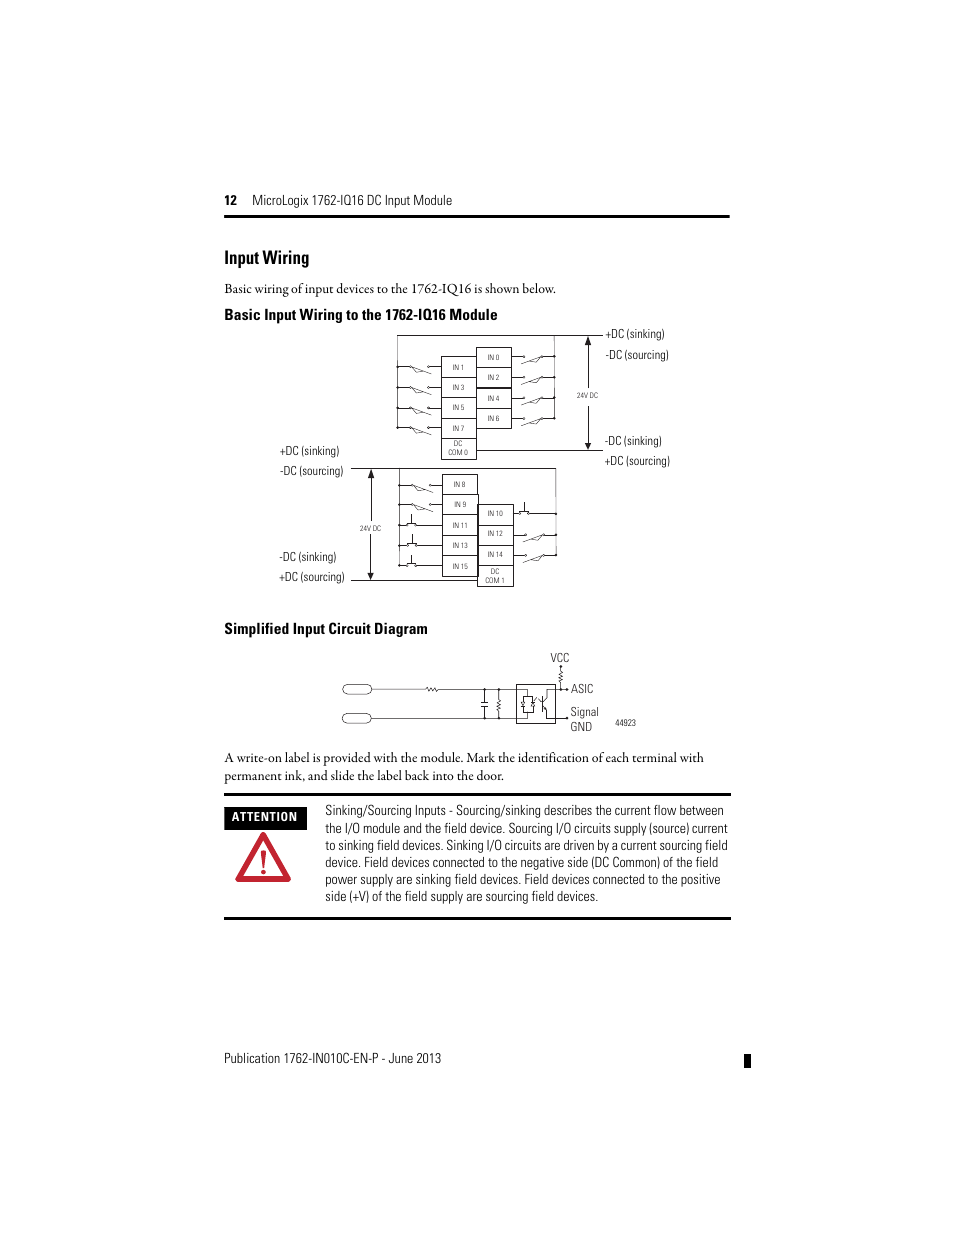 rockwell automation 1762 iq16 dc input module page12 1762 ia8 wiring diagram wiring color standards \u2022 wiring diagram 1762-ia8 wiring diagram at webbmarketing.co